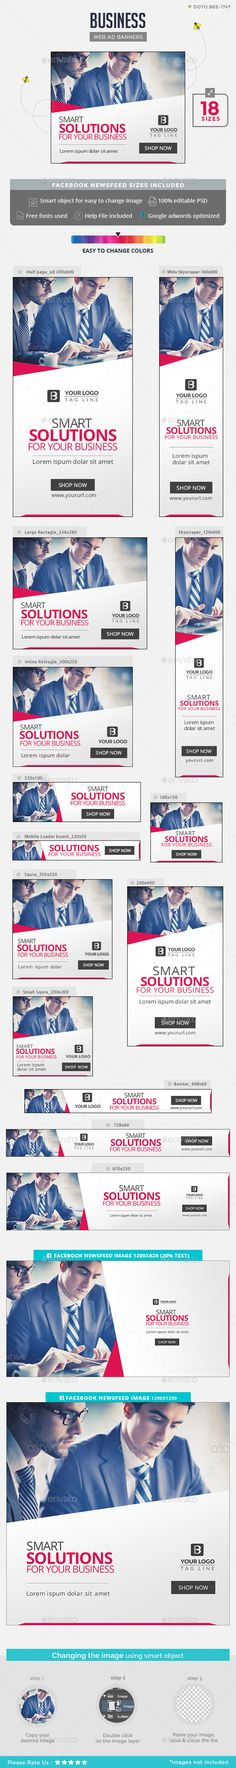 Business Banners - #Banners & Ads #Web Elements Download here: https://graphicriver.net/item/business-banners/18566260?ref=alena994